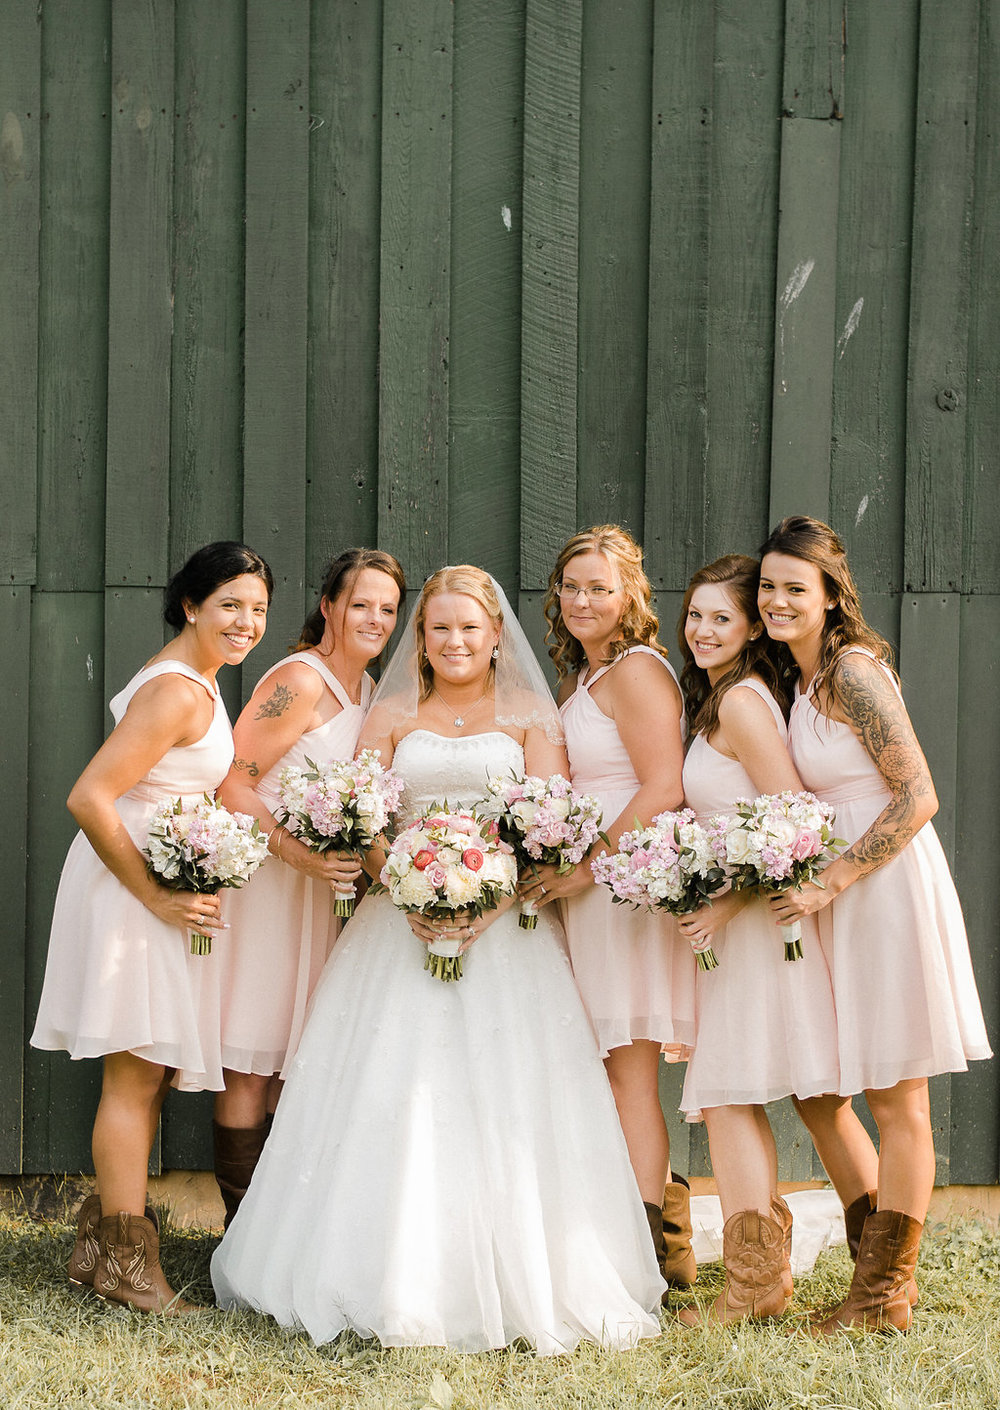 country rustic bride and bridesmaids wedding photo